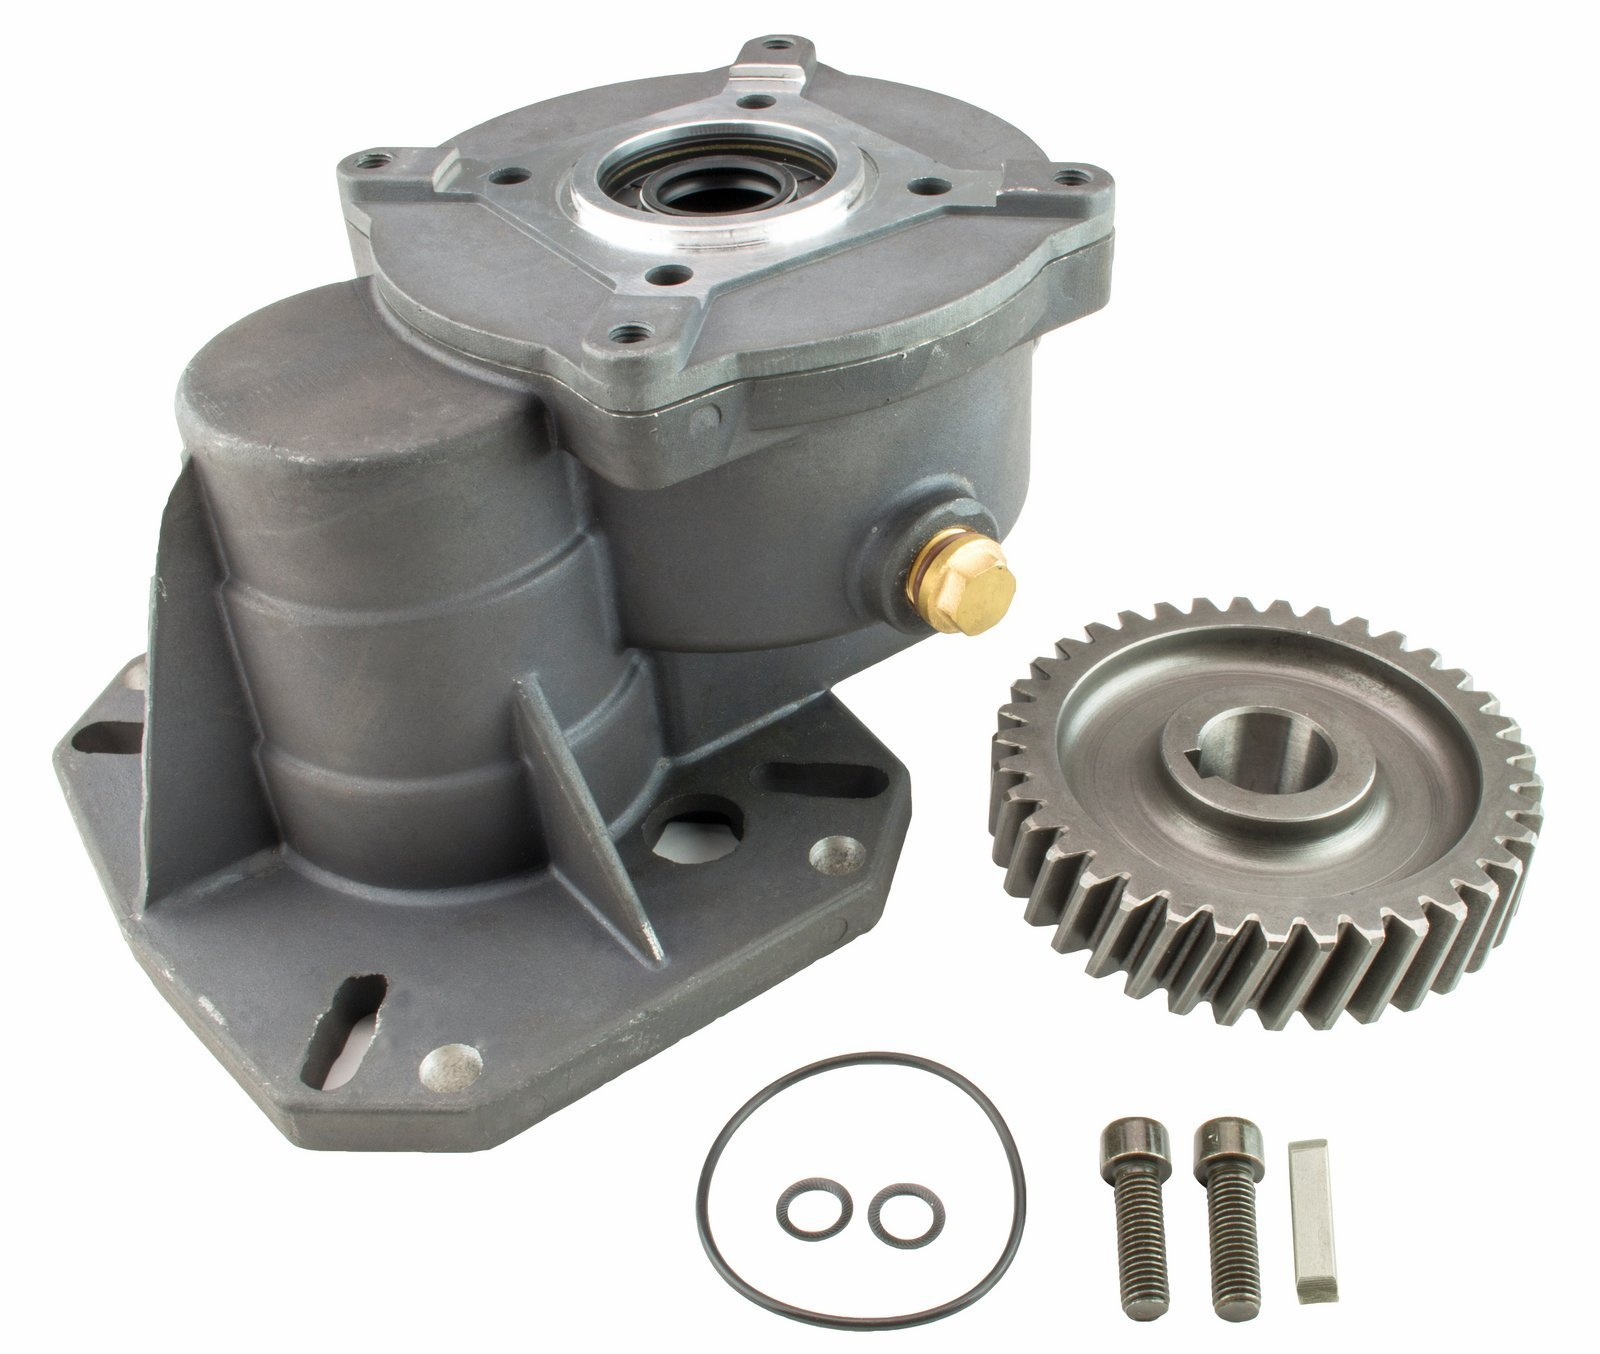 Erie Tools Pressure Washer Pump 3/4'' Hollow Shaft Gear Reduction Box 5.5 HP 6.5 HP Engines